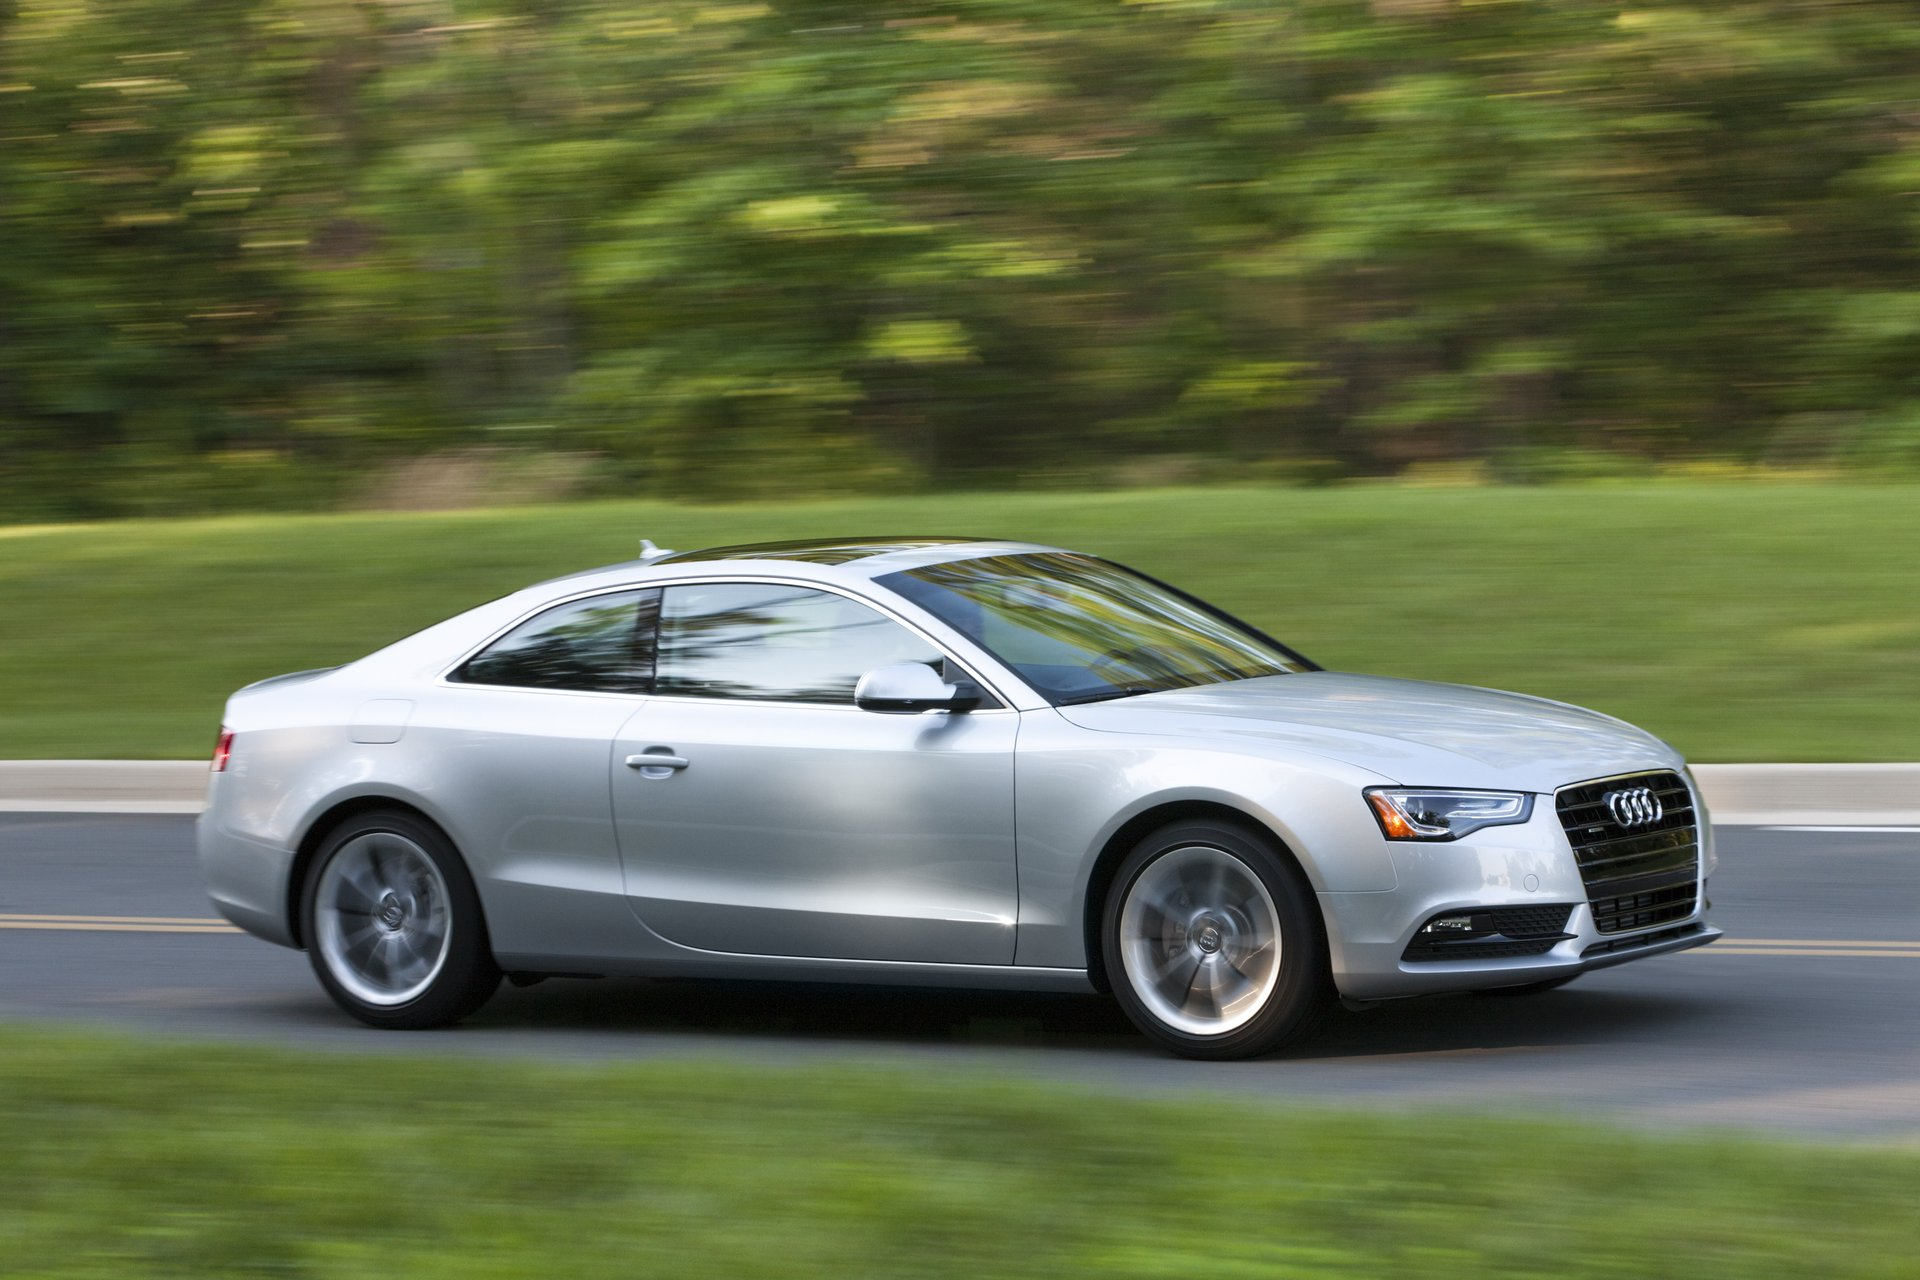 2015 audi a5 performance review the car connection. Black Bedroom Furniture Sets. Home Design Ideas